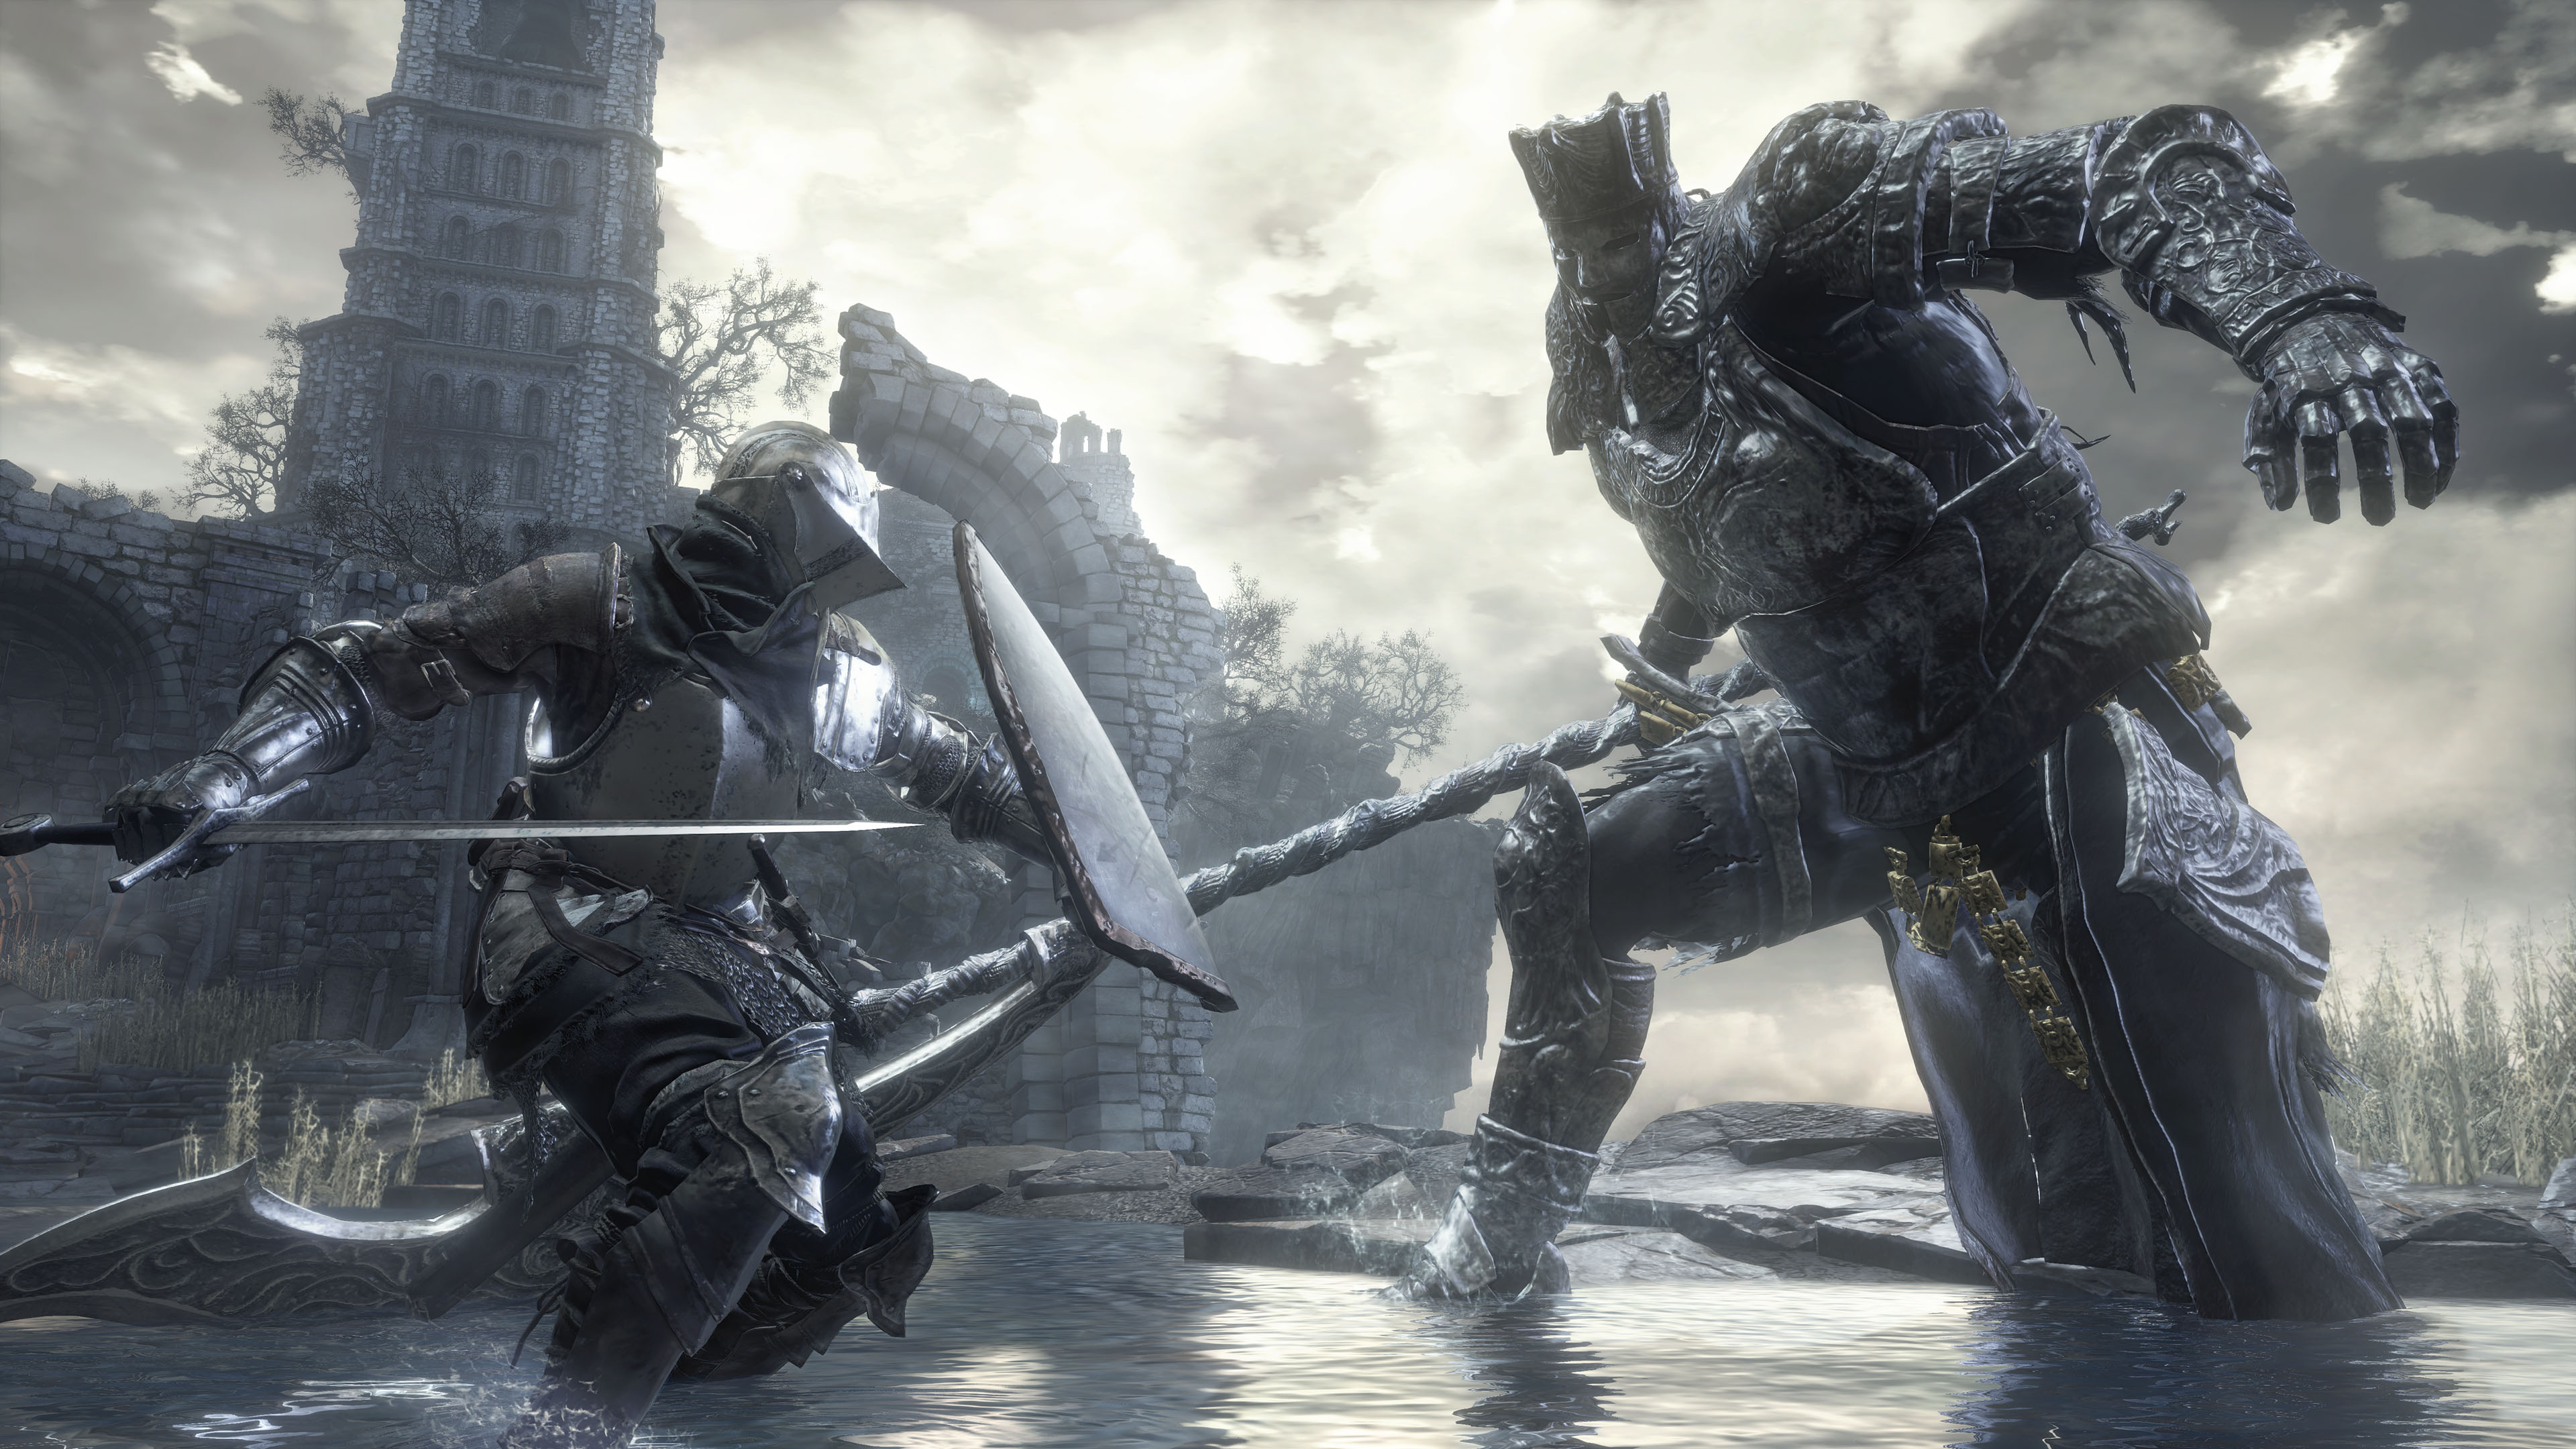 Dark souls 3 season pass leaked comes with two dlc packs vg247